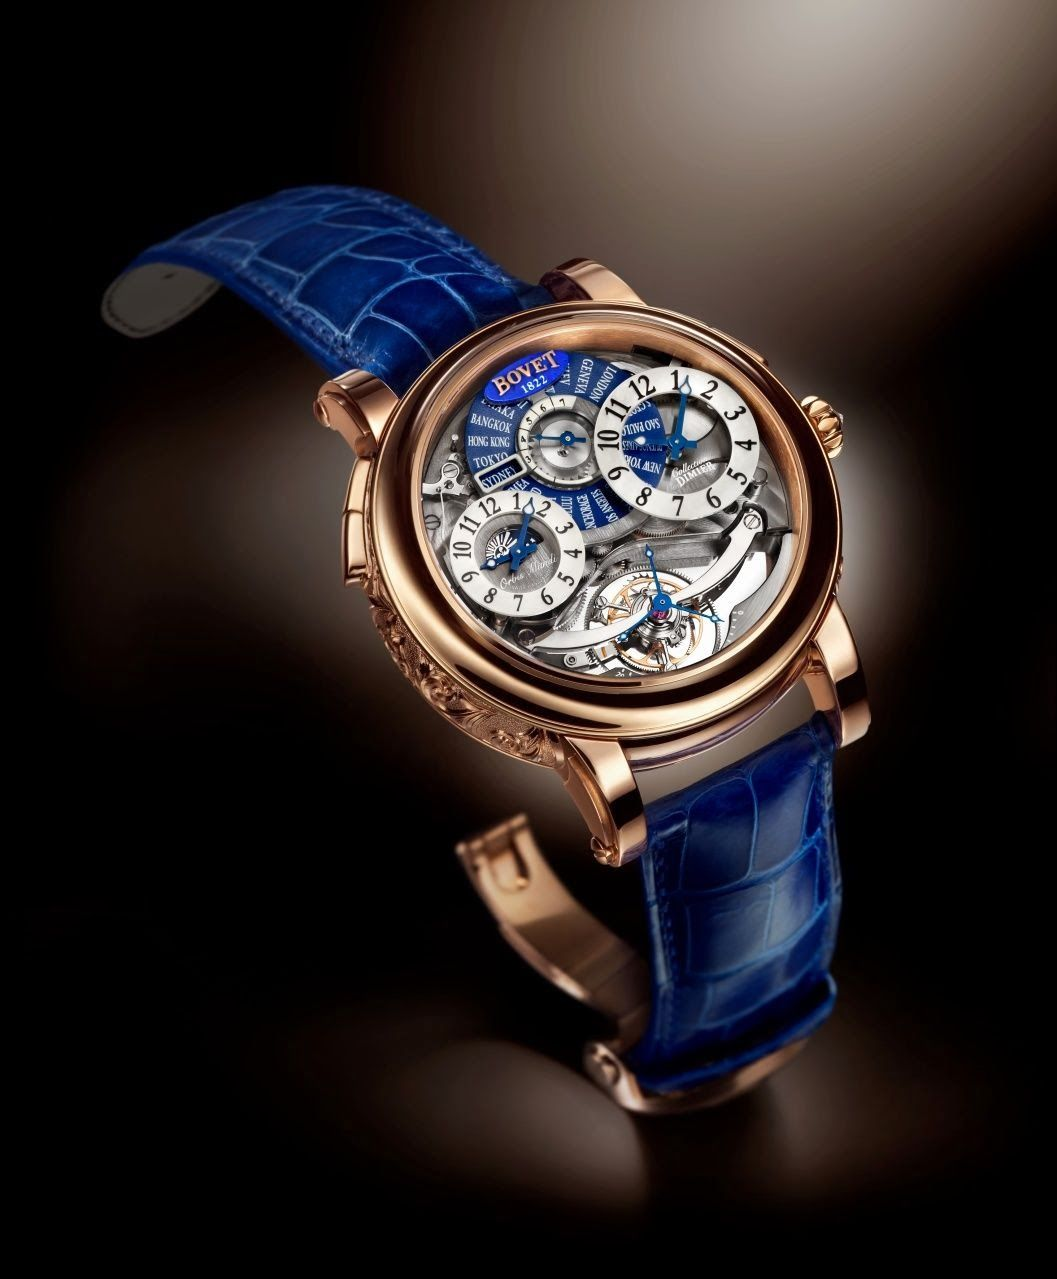 artisans guilloch blue after and a layers the fleurier time virtuoso maison bovet amadeo finally before lacquer watches motif translucent base metal dozen decorating applied with v of